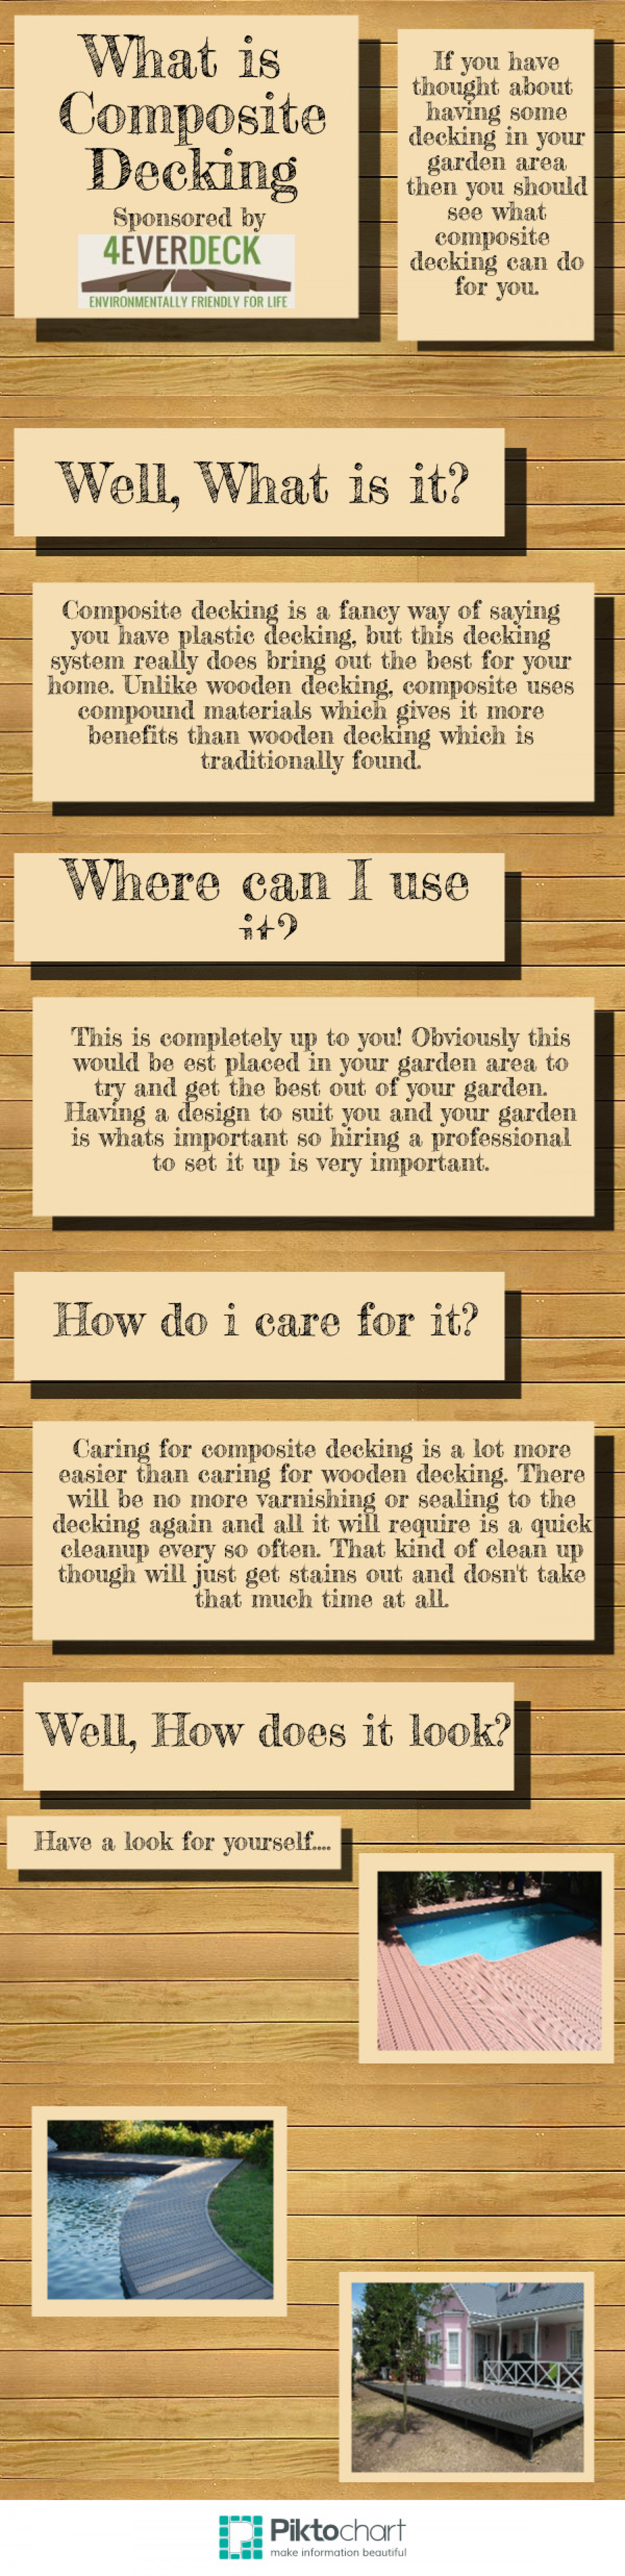 What is Composite Decking Infographic